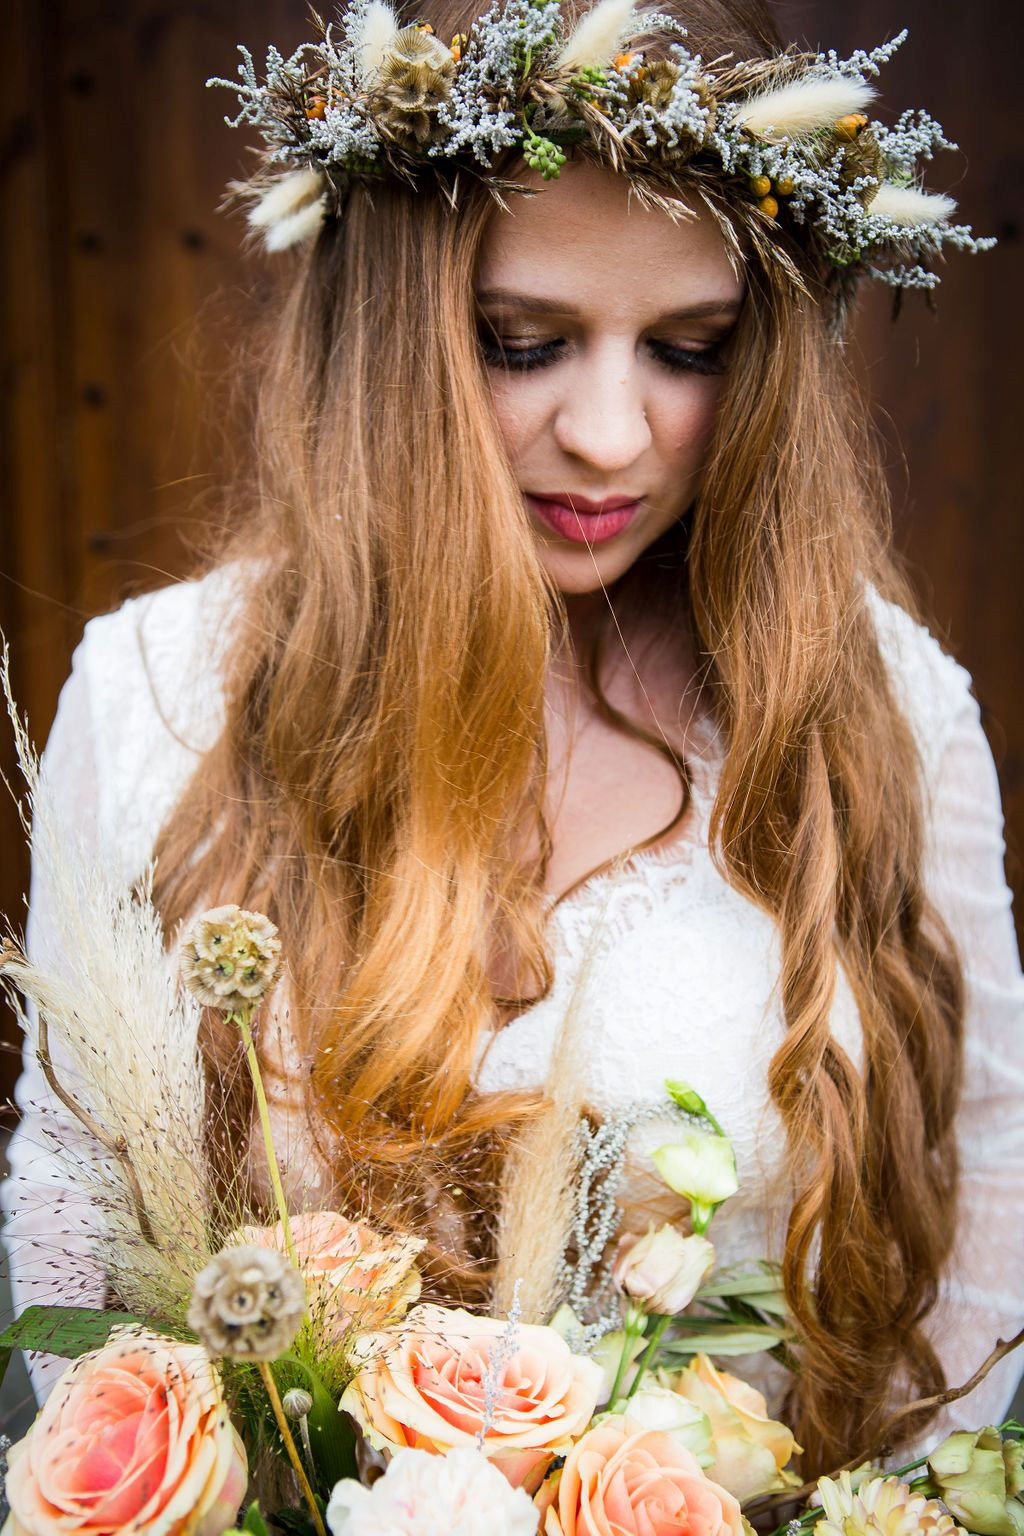 autumn-love-micro-wedding-shoot-devon-50